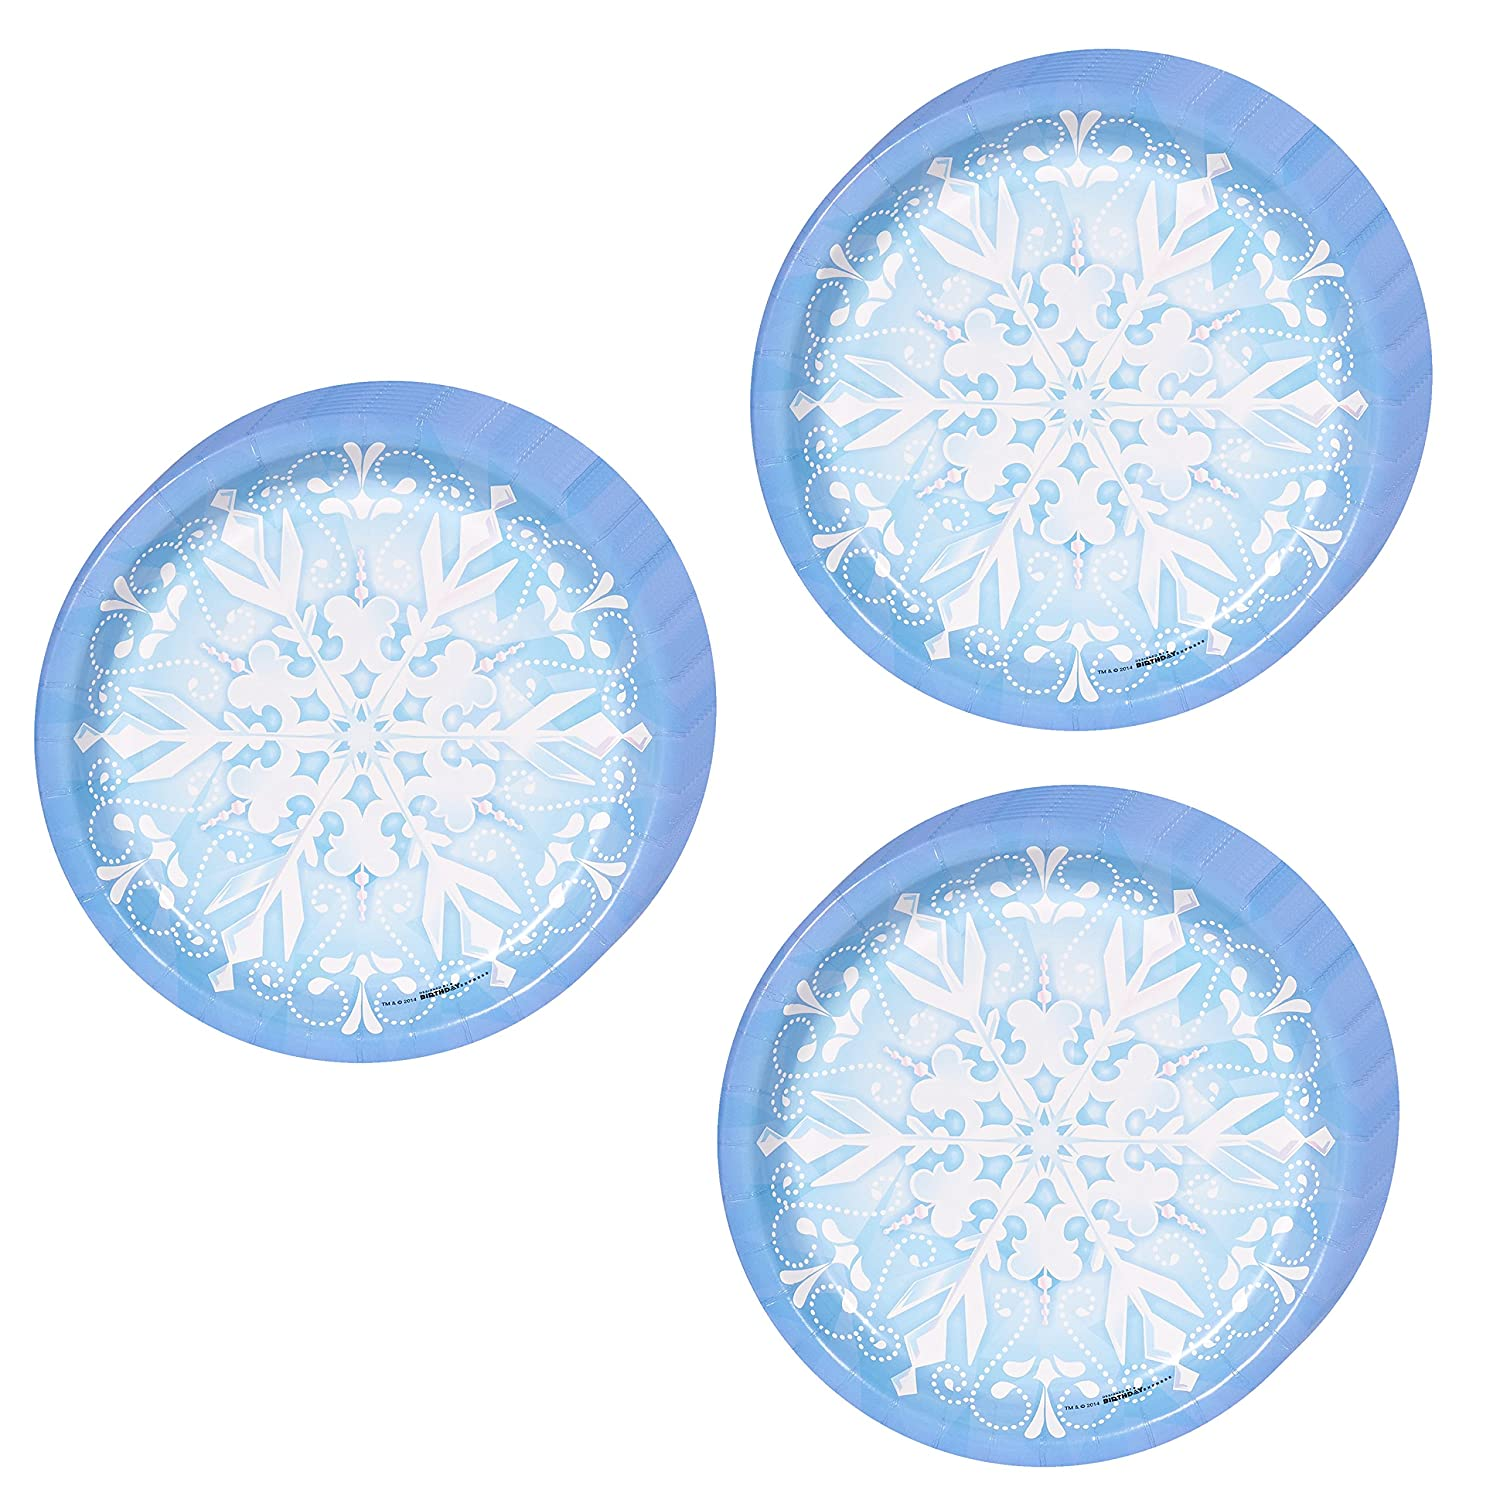 Snowflake Winter Wonderland Party Collection - Winter Home Decor